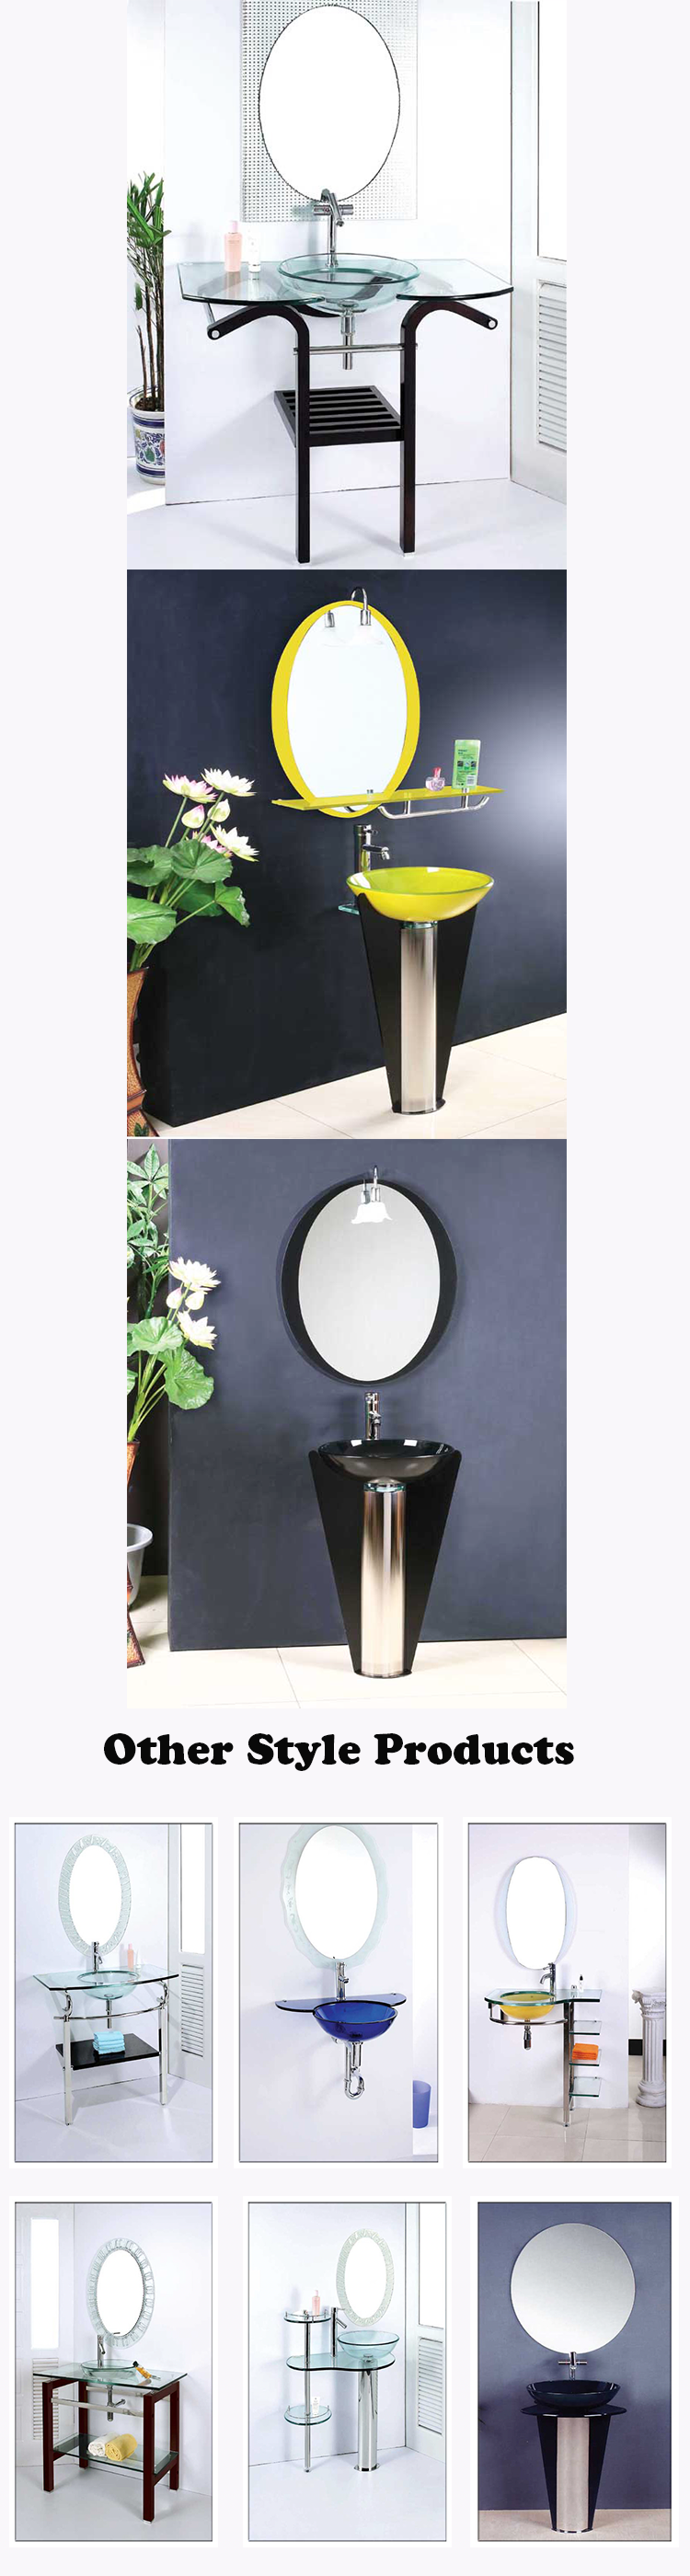 Modern Bathroom Vanities Tempered Glass Design Vessel Sink wholesale make up vanity new design modern bathroom vanity